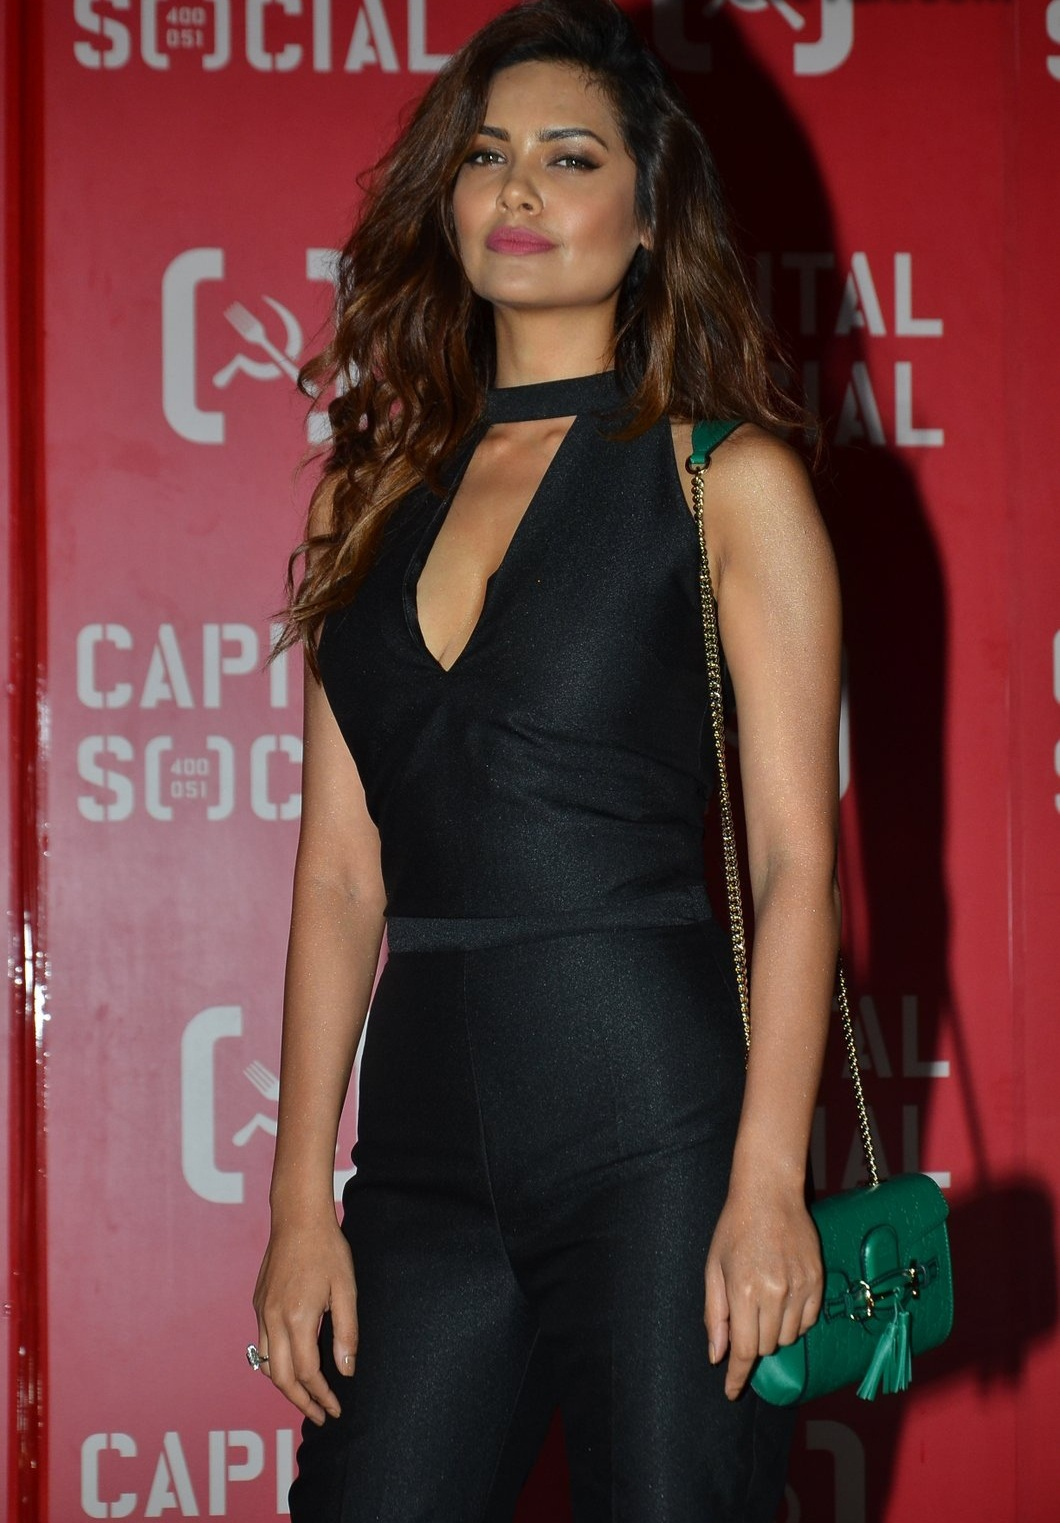 Esha Gupta In Black Dress At Restaurant Launch In Mumbai